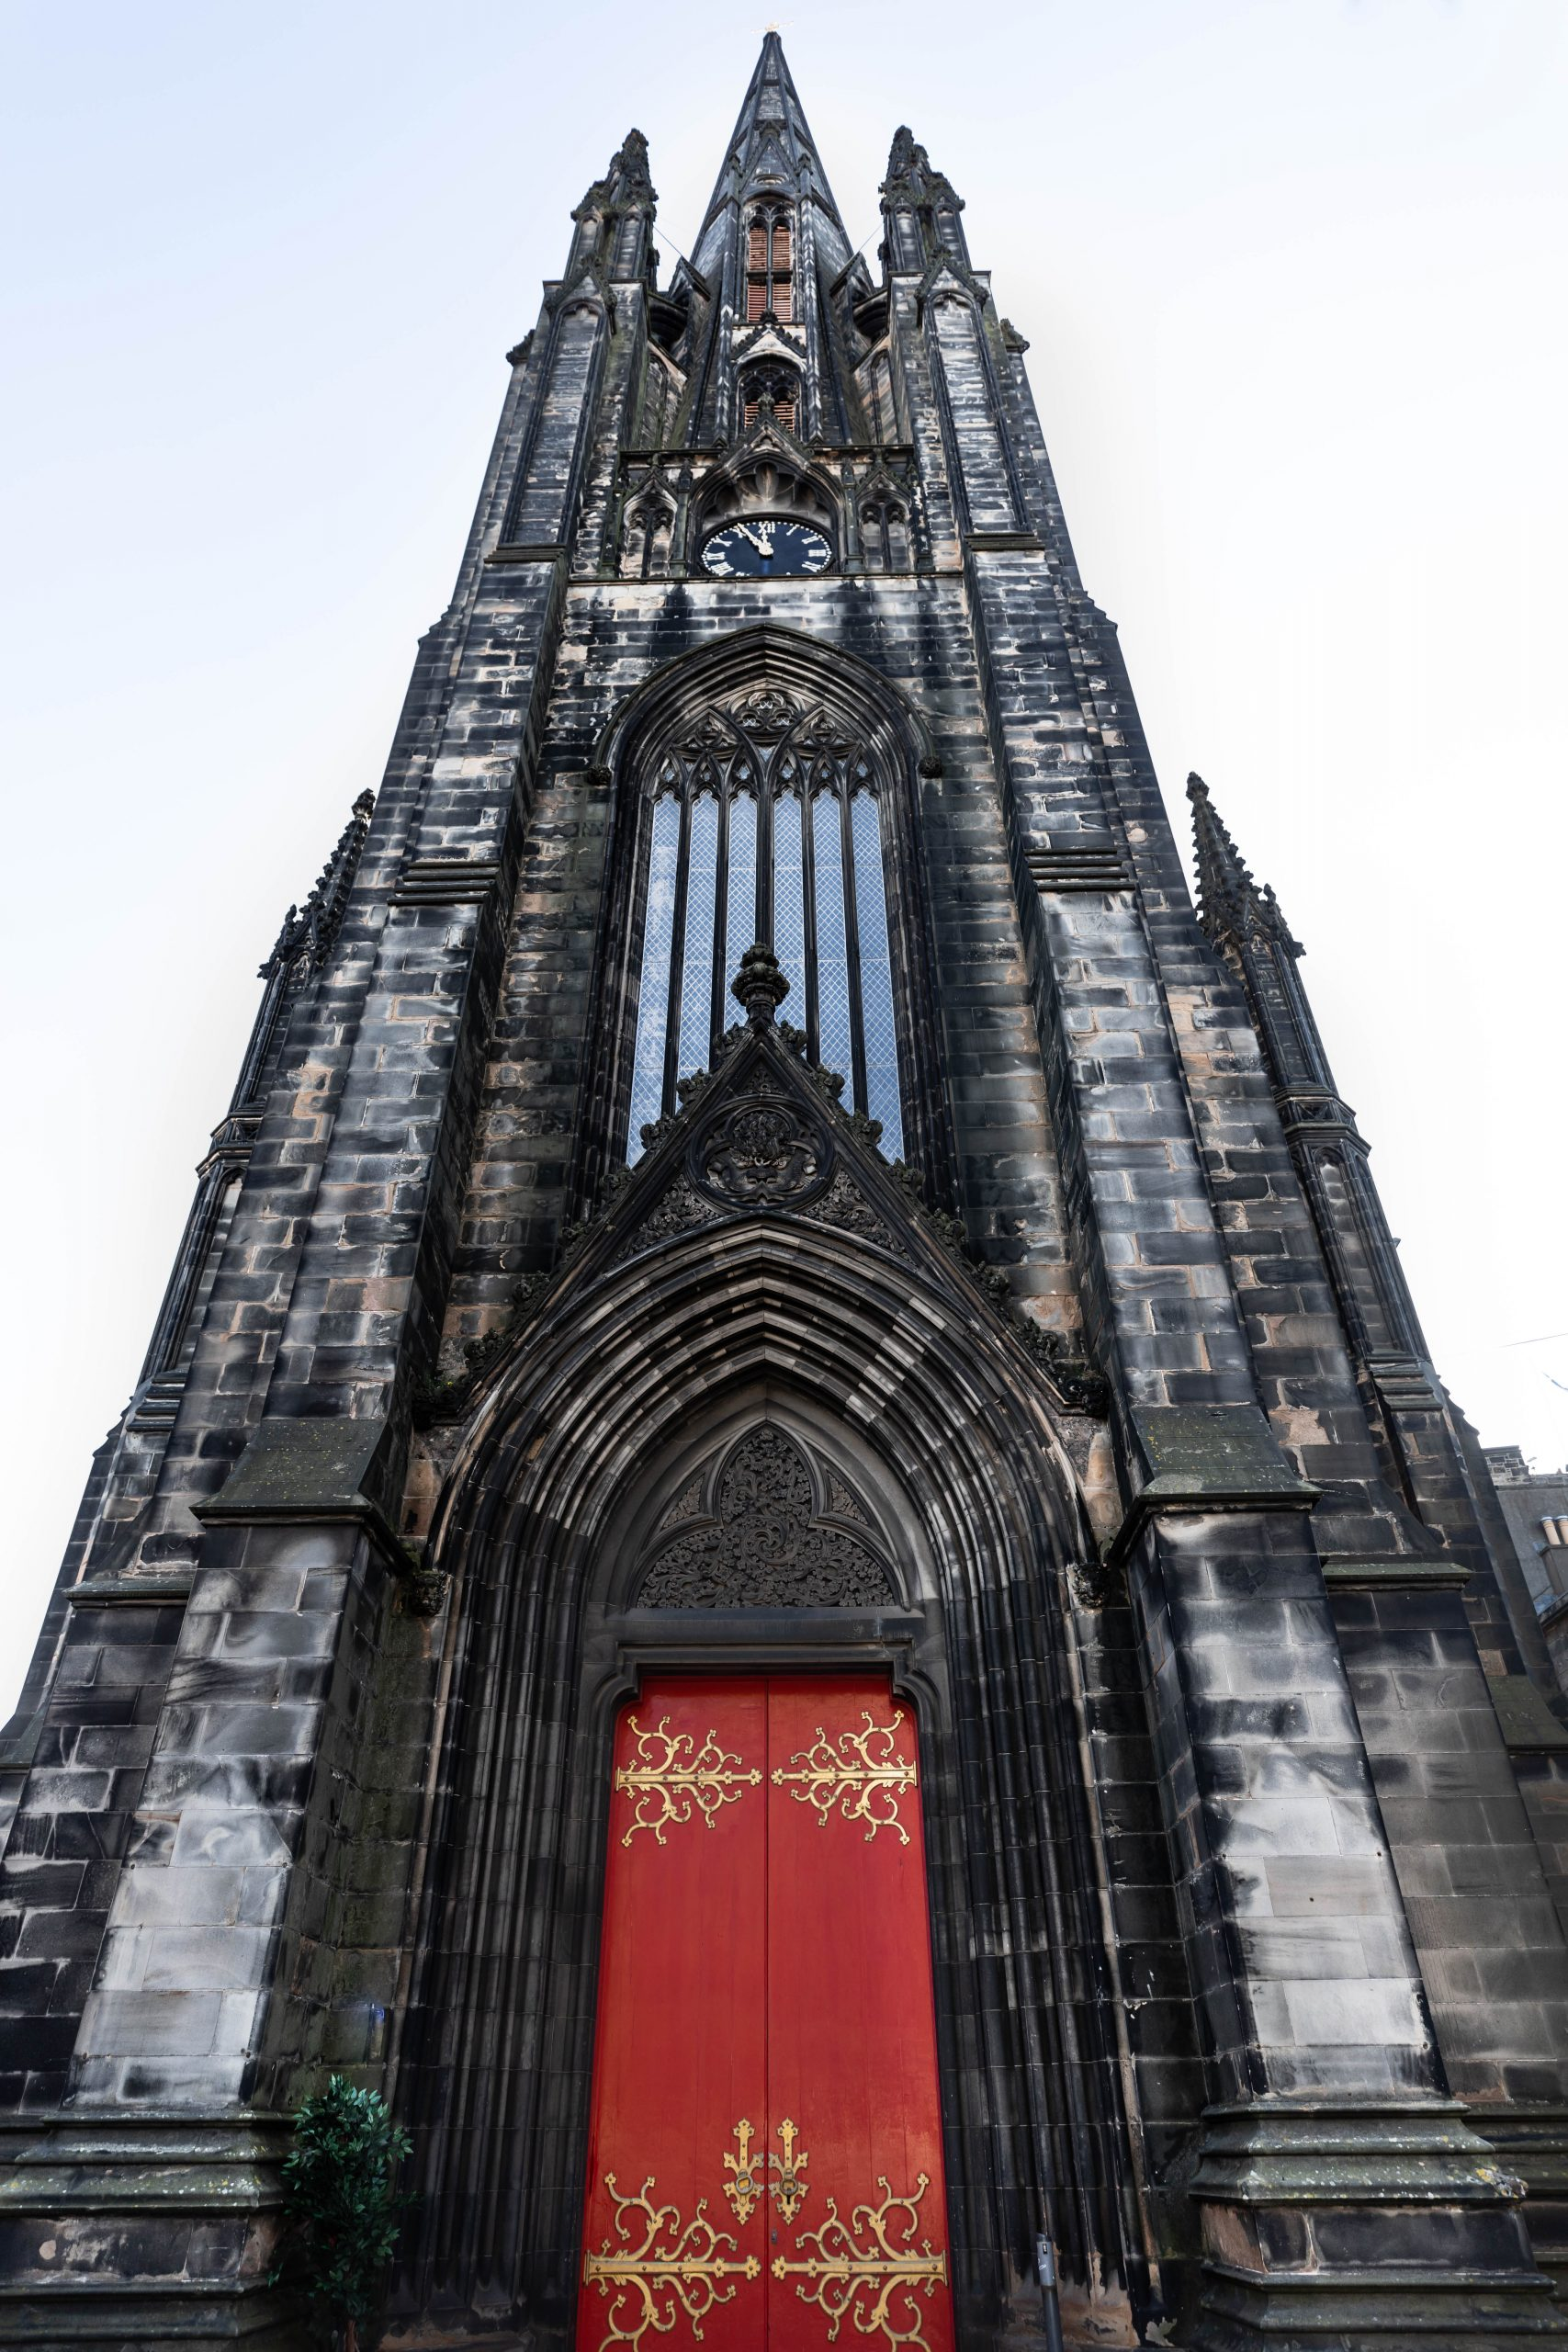 St. Columba's Free Church Edinburgh Old Town Royal Mile Edinburgh the Luxury Travel Guide by Annie Fairfax Where to Eat What to Do Where to Stay Site Seeing in Edinburgh Honeymoon Vacation Ideas